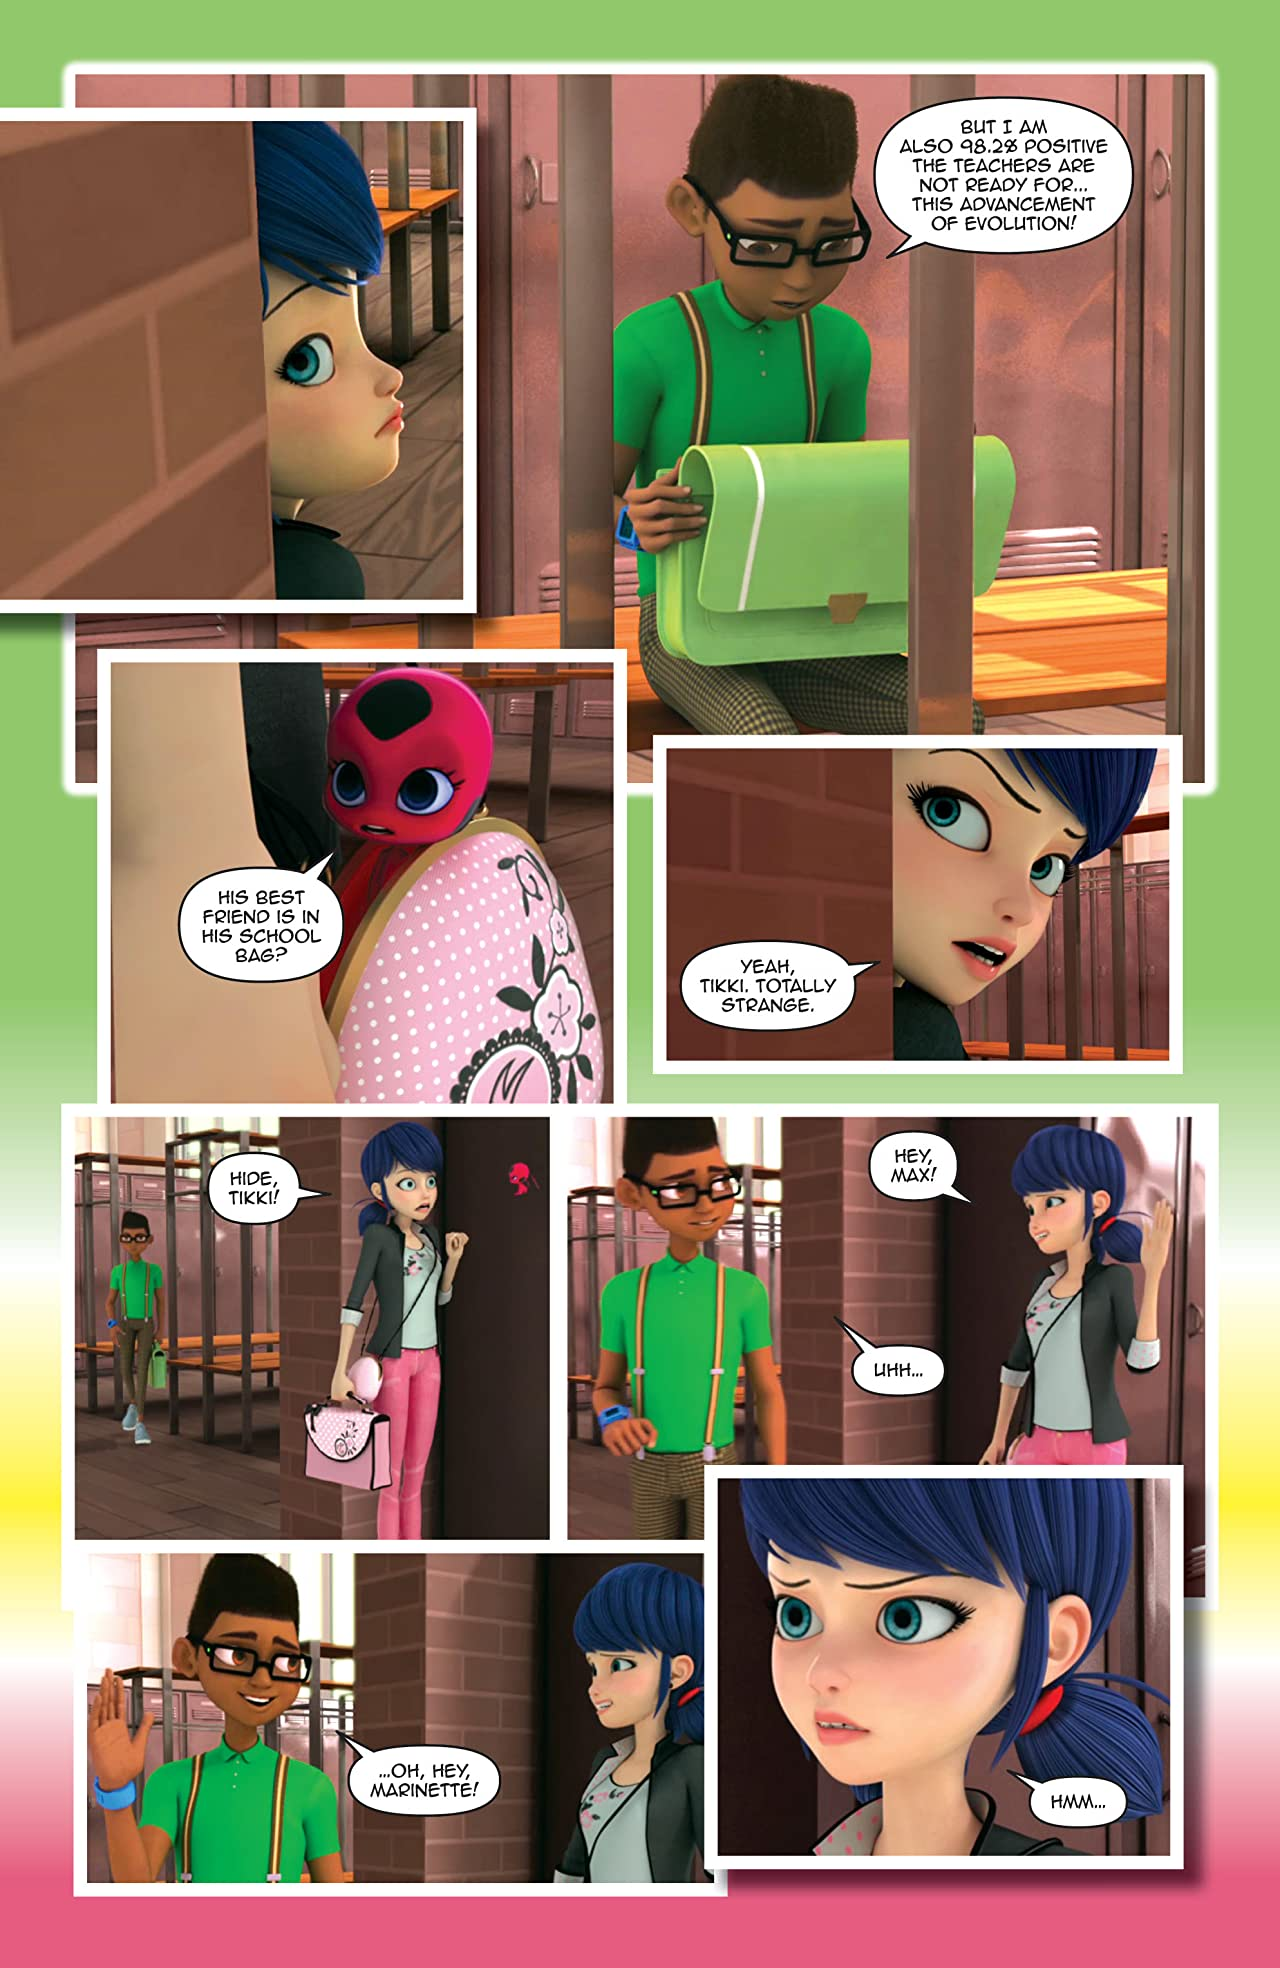 Will there be a miraculous season 6